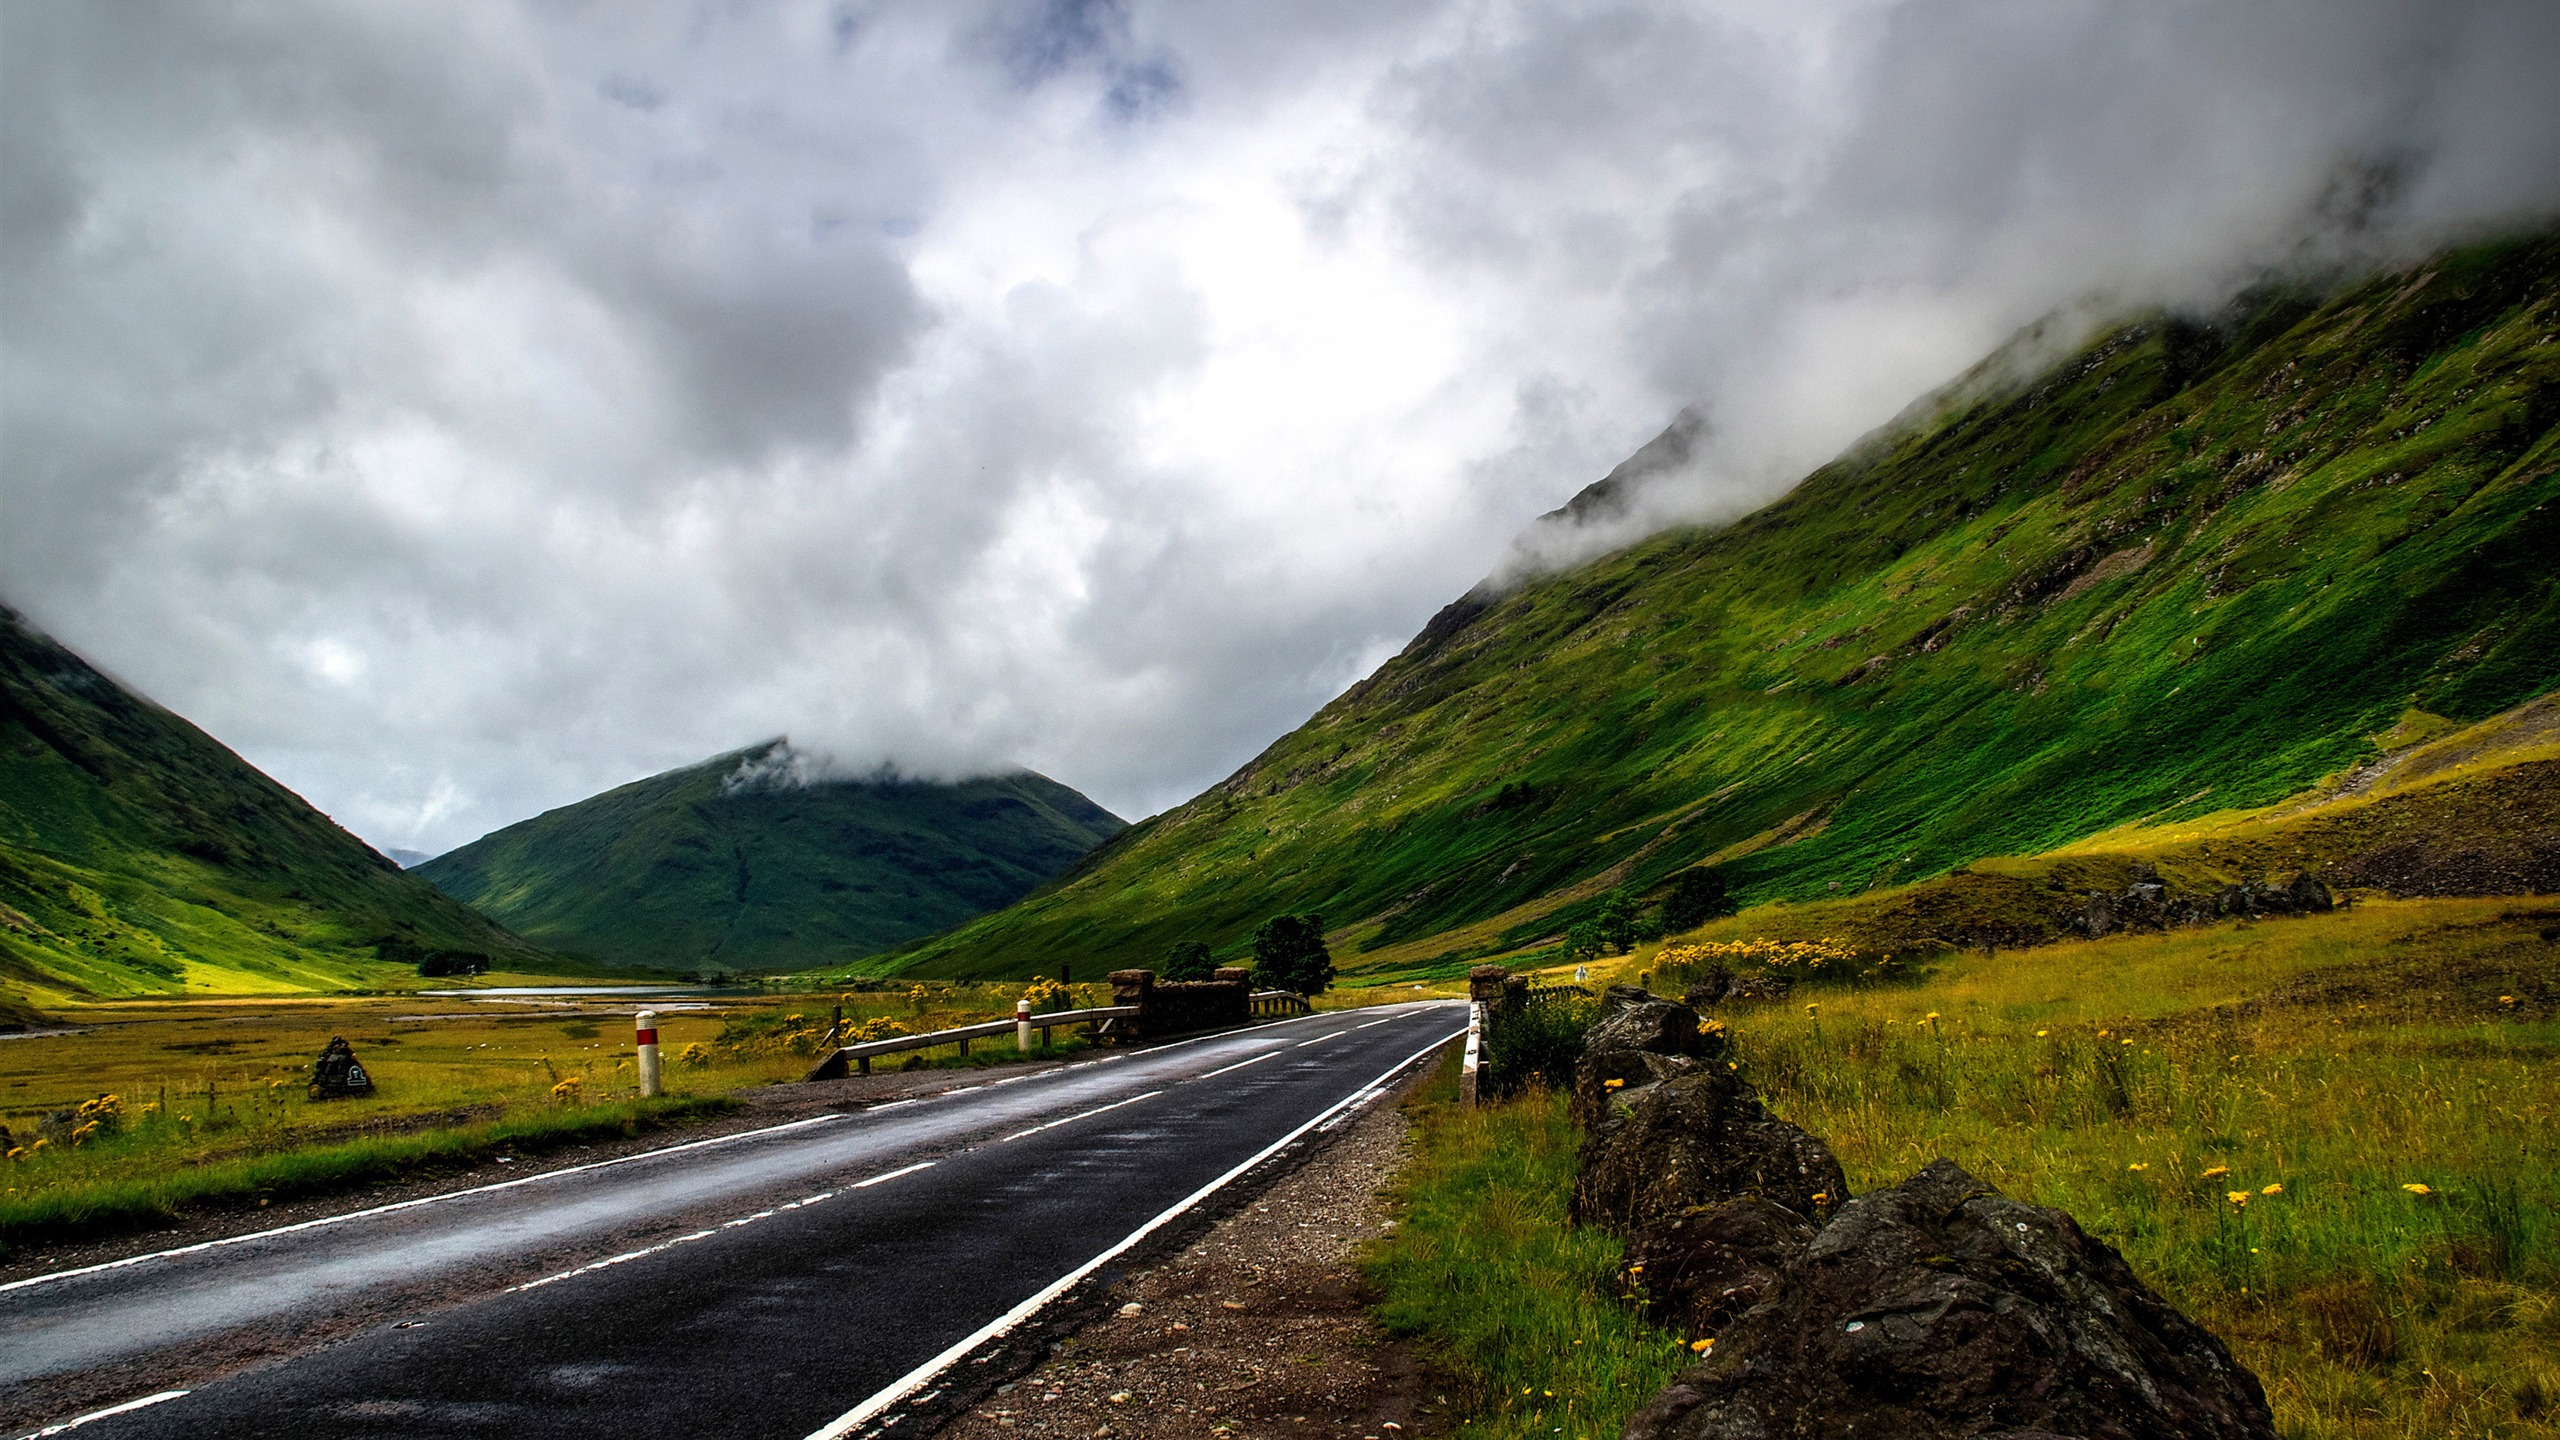 Travel landscape mountain cloud sky road - 2560x1440 wallpaper download